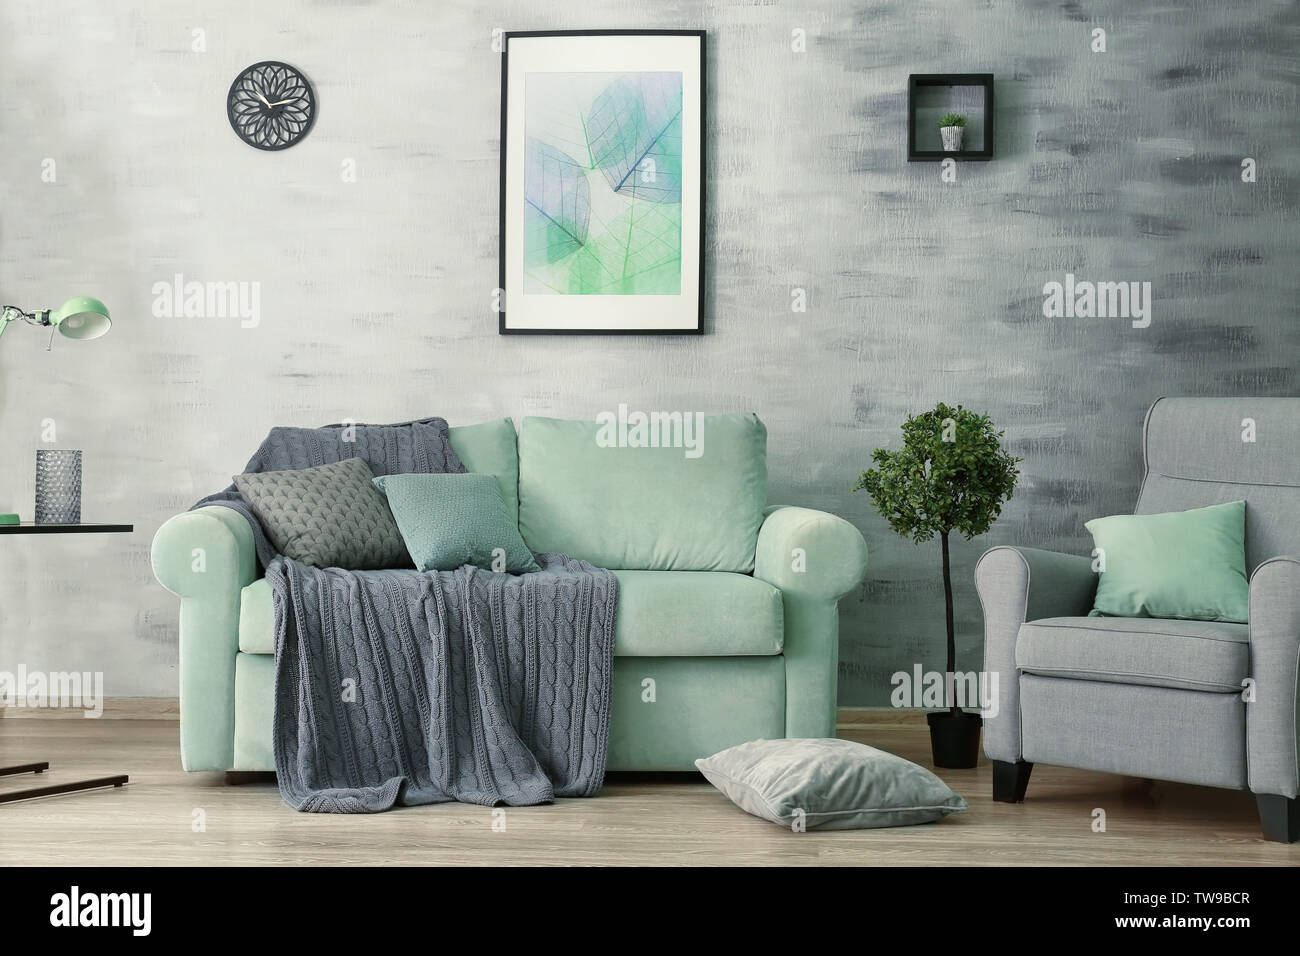 Living Room Interior With Comfortable Mint Couch Stock Photo Alamy